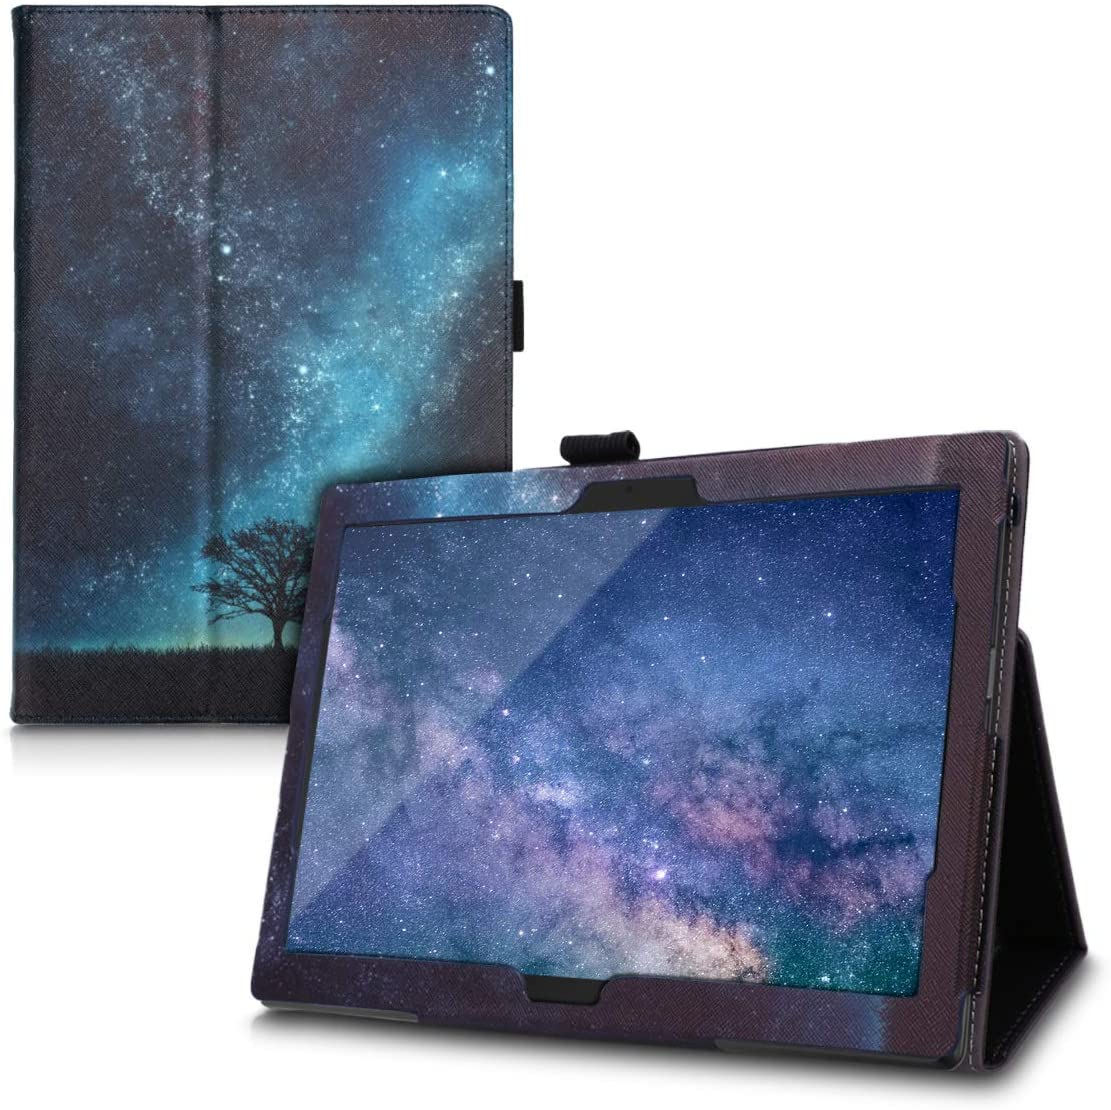 kwmobile Case Compatible with Lenovo Tab 4 10 - Slim PU Leather Tablet Cover with Stand Feature - Cosmic Nature Blue/Grey/Black